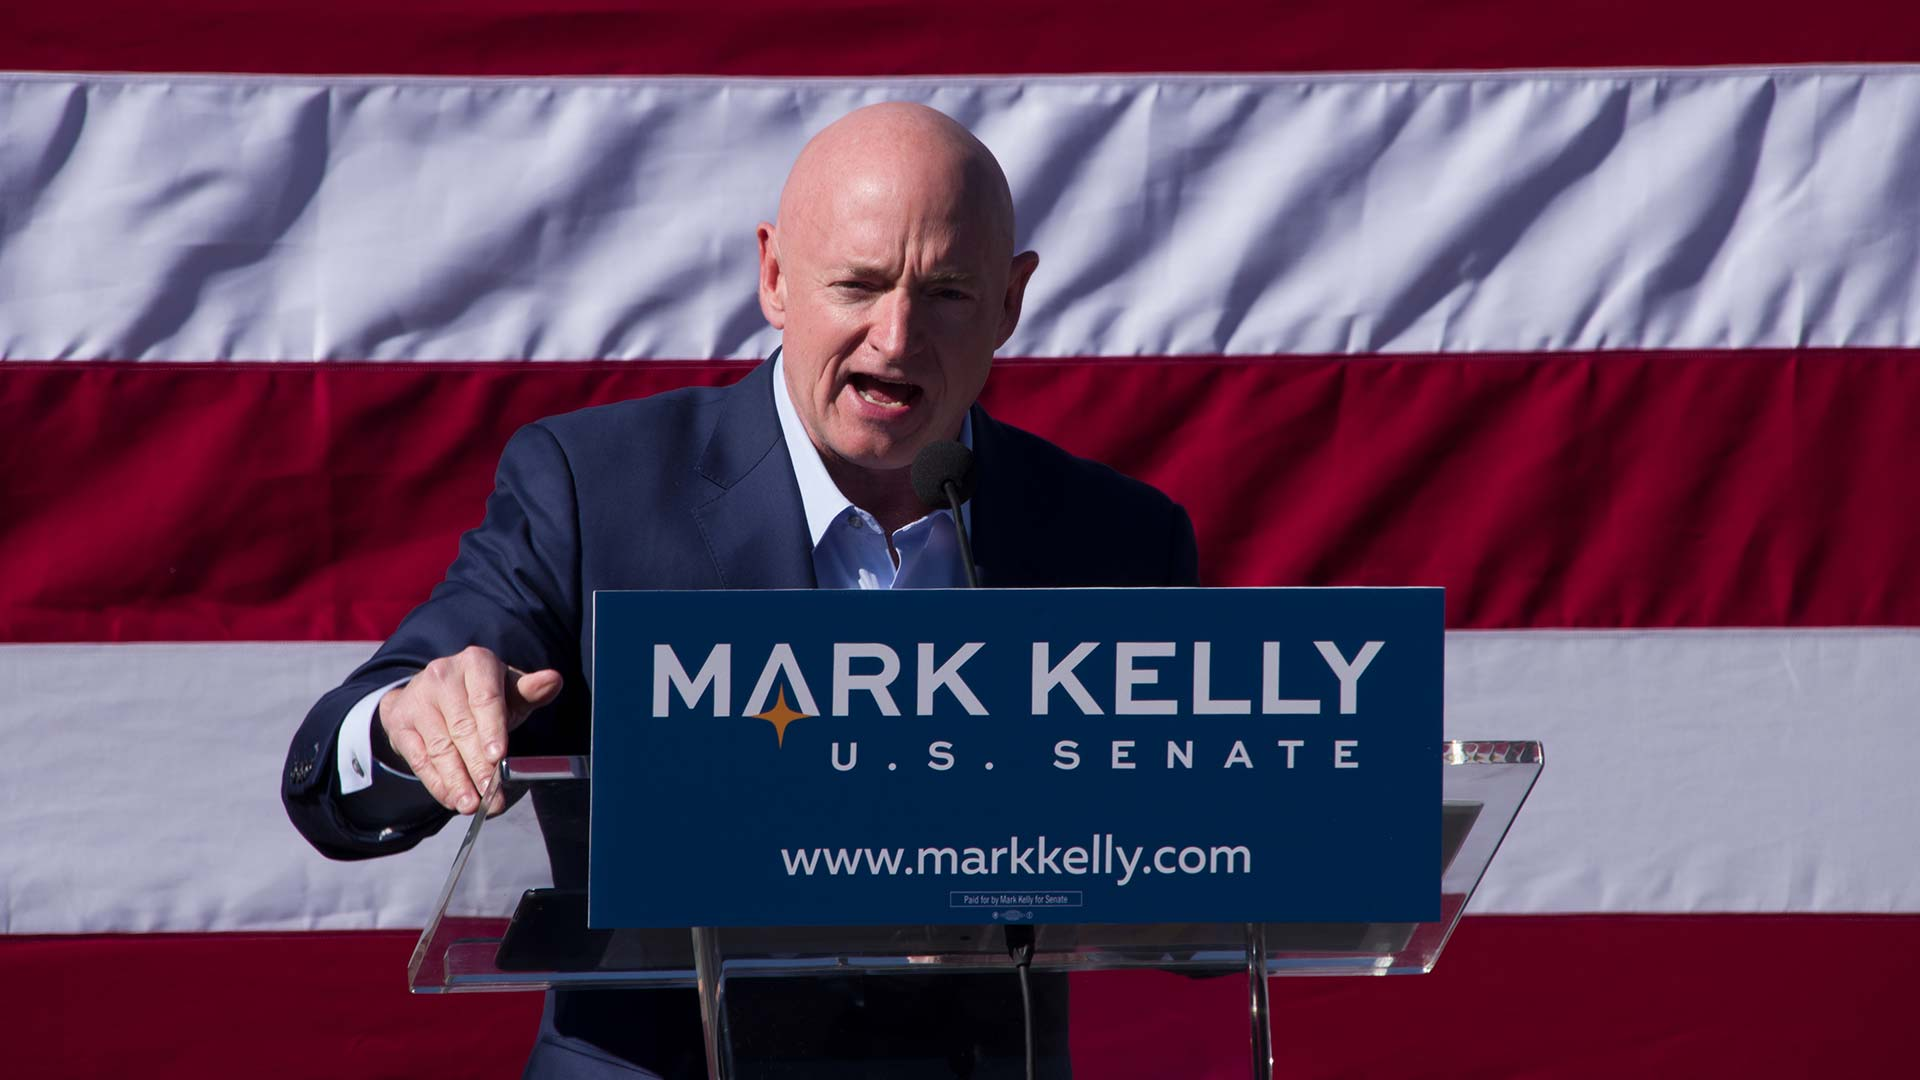 Democratic candidate for U.S. Senate Mark Kelly hits the campaign trail in Tucson. February 23, 2019